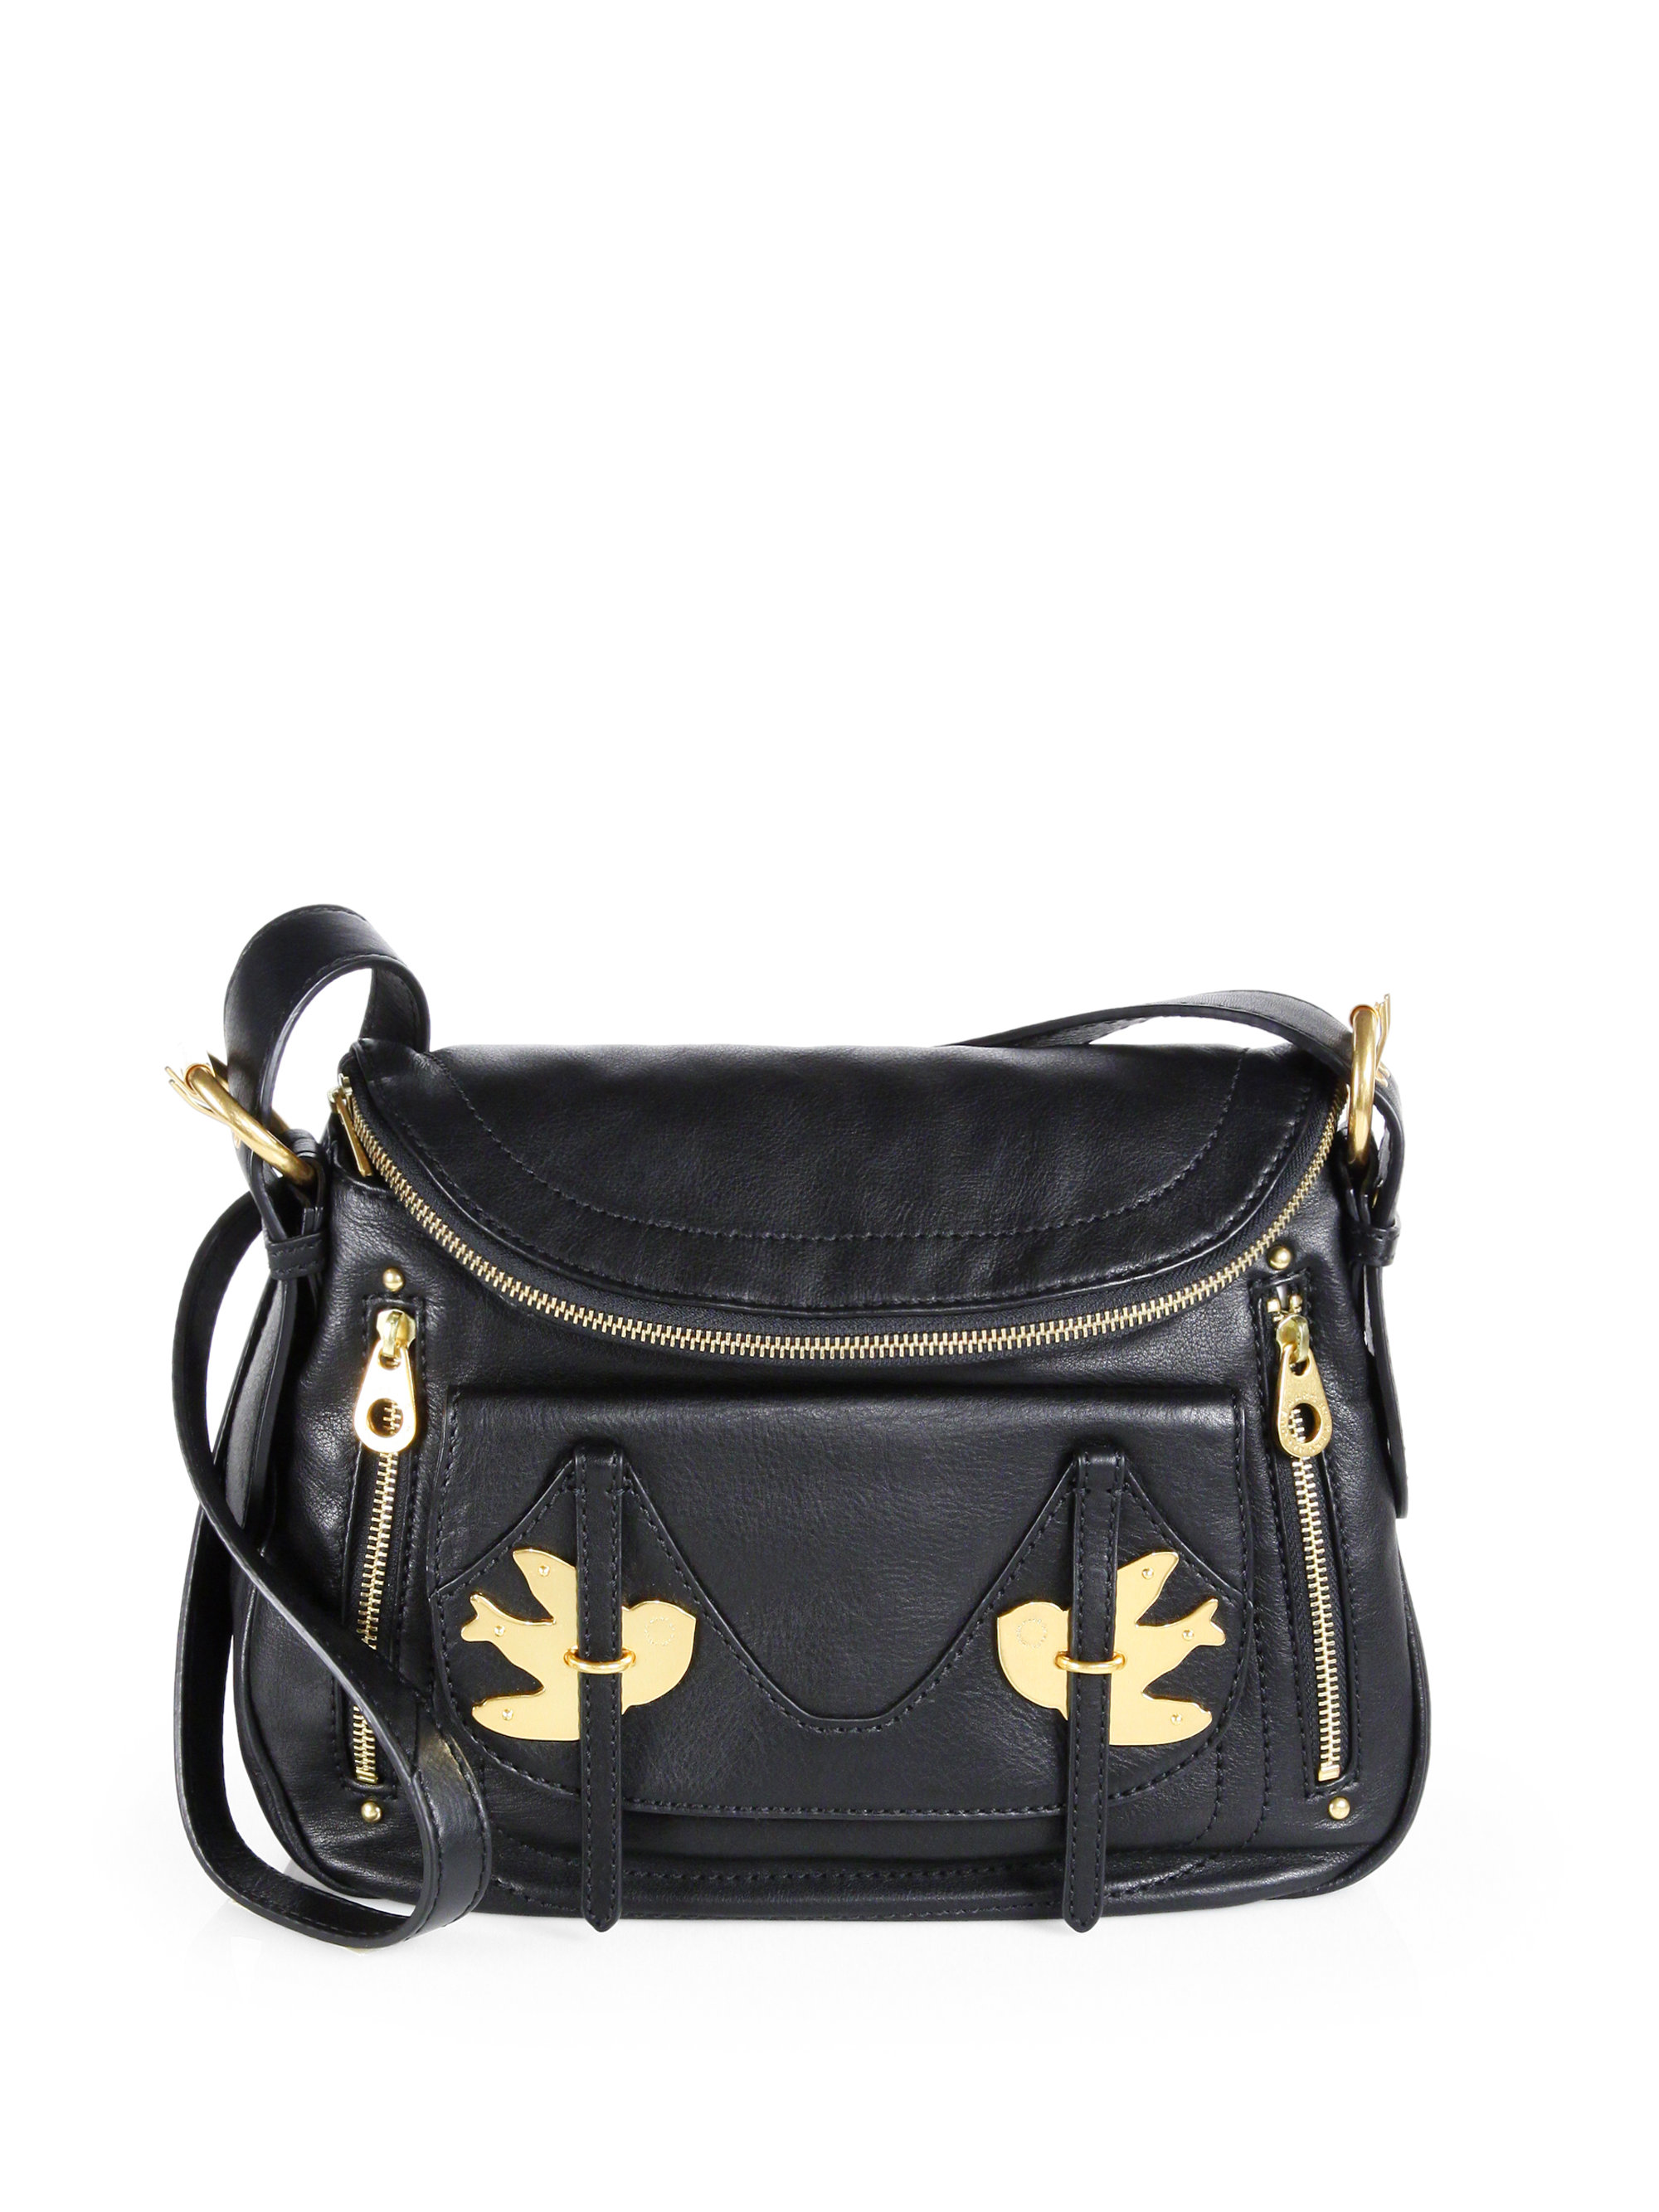 4e34db40379d Gallery. Previously sold at  Saks Fifth Avenue · Women s Marc Jacobs Natasha